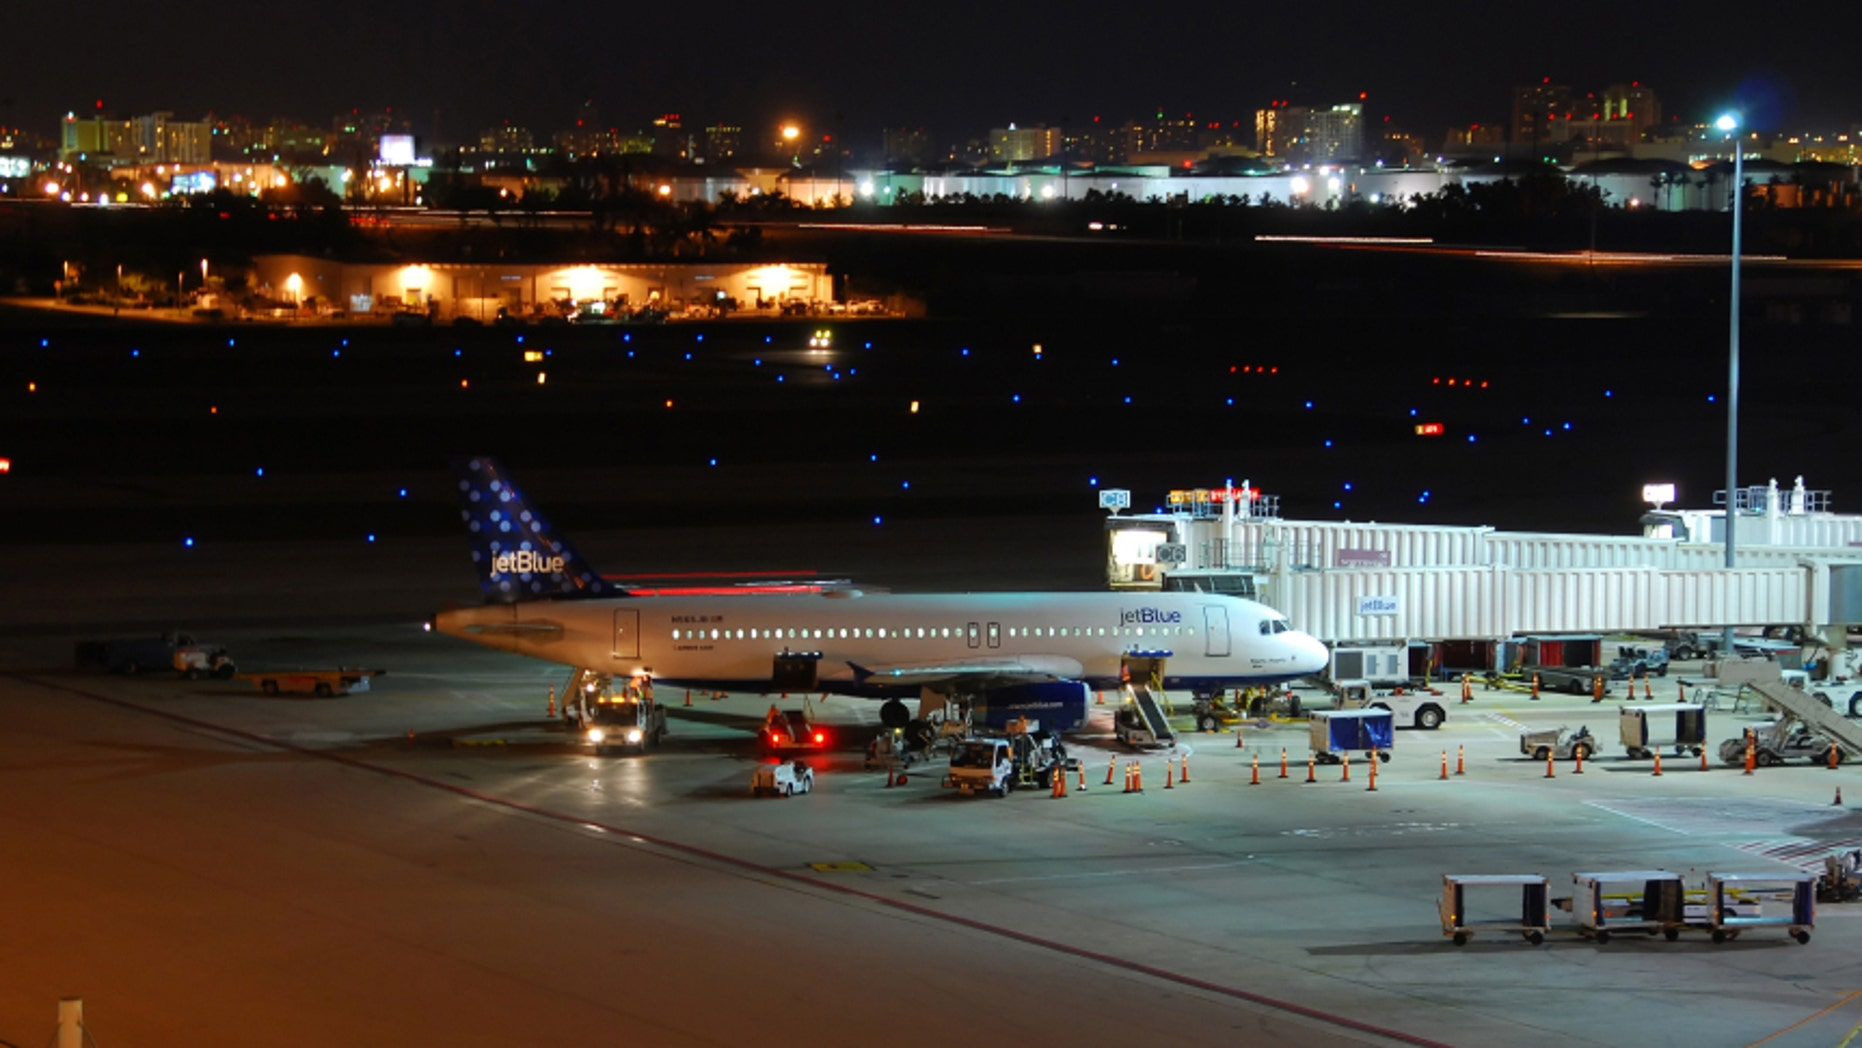 JetBlue airplane departing from Fort Lauderdale Hollywood International Airport.